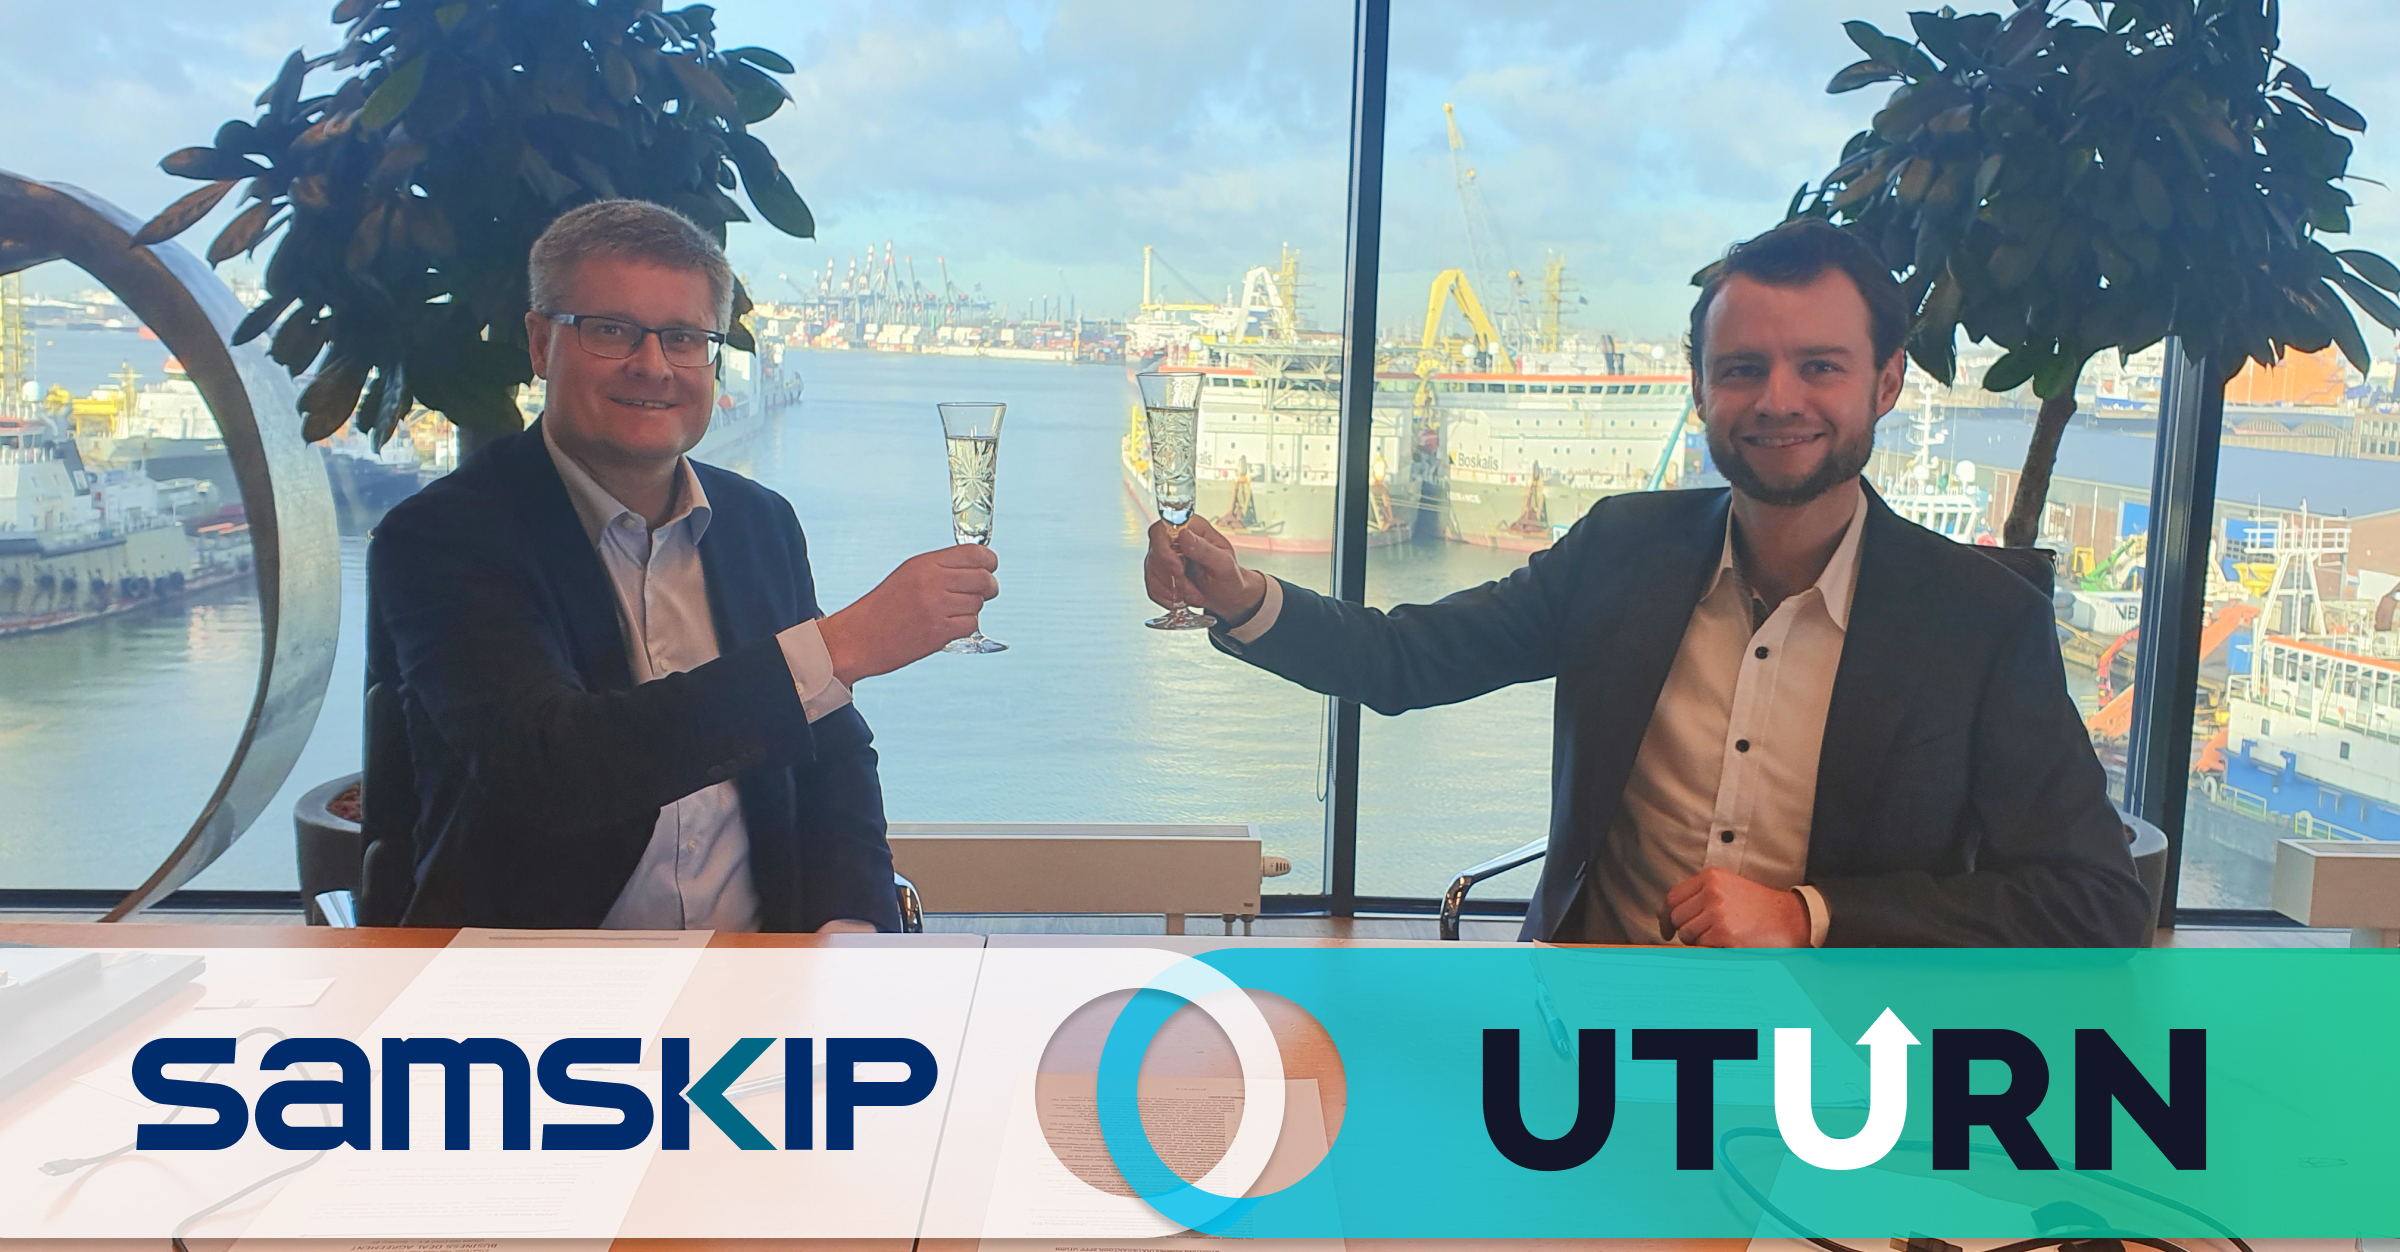 Samskip implements UTURN as their next step in the digitisation of their container transport